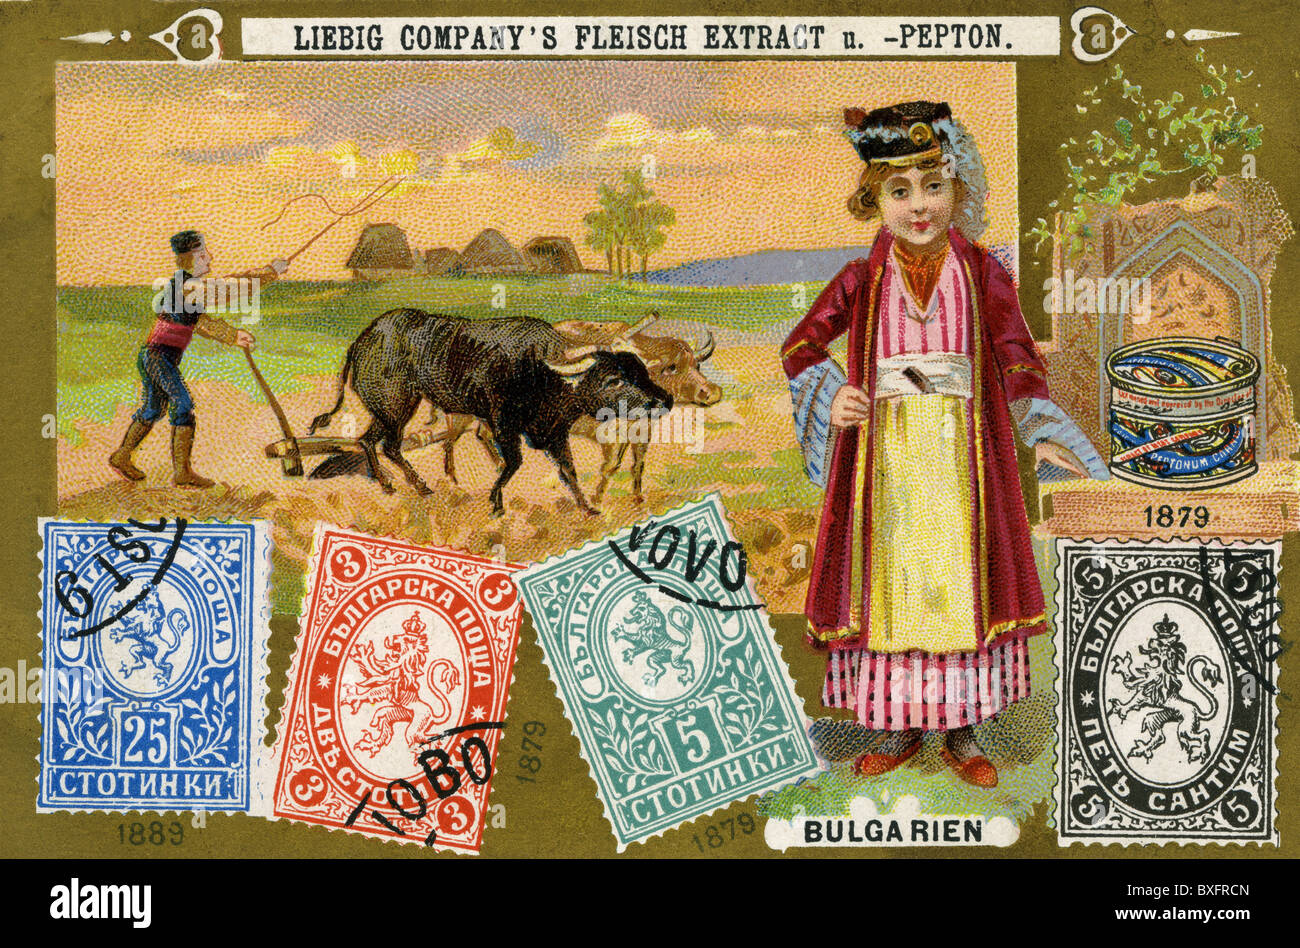 mail / post, postage stamps, Bulgarian postage stamps, 1879, 1889, Liebig collection card, Germany, circa 1898, - Stock Image